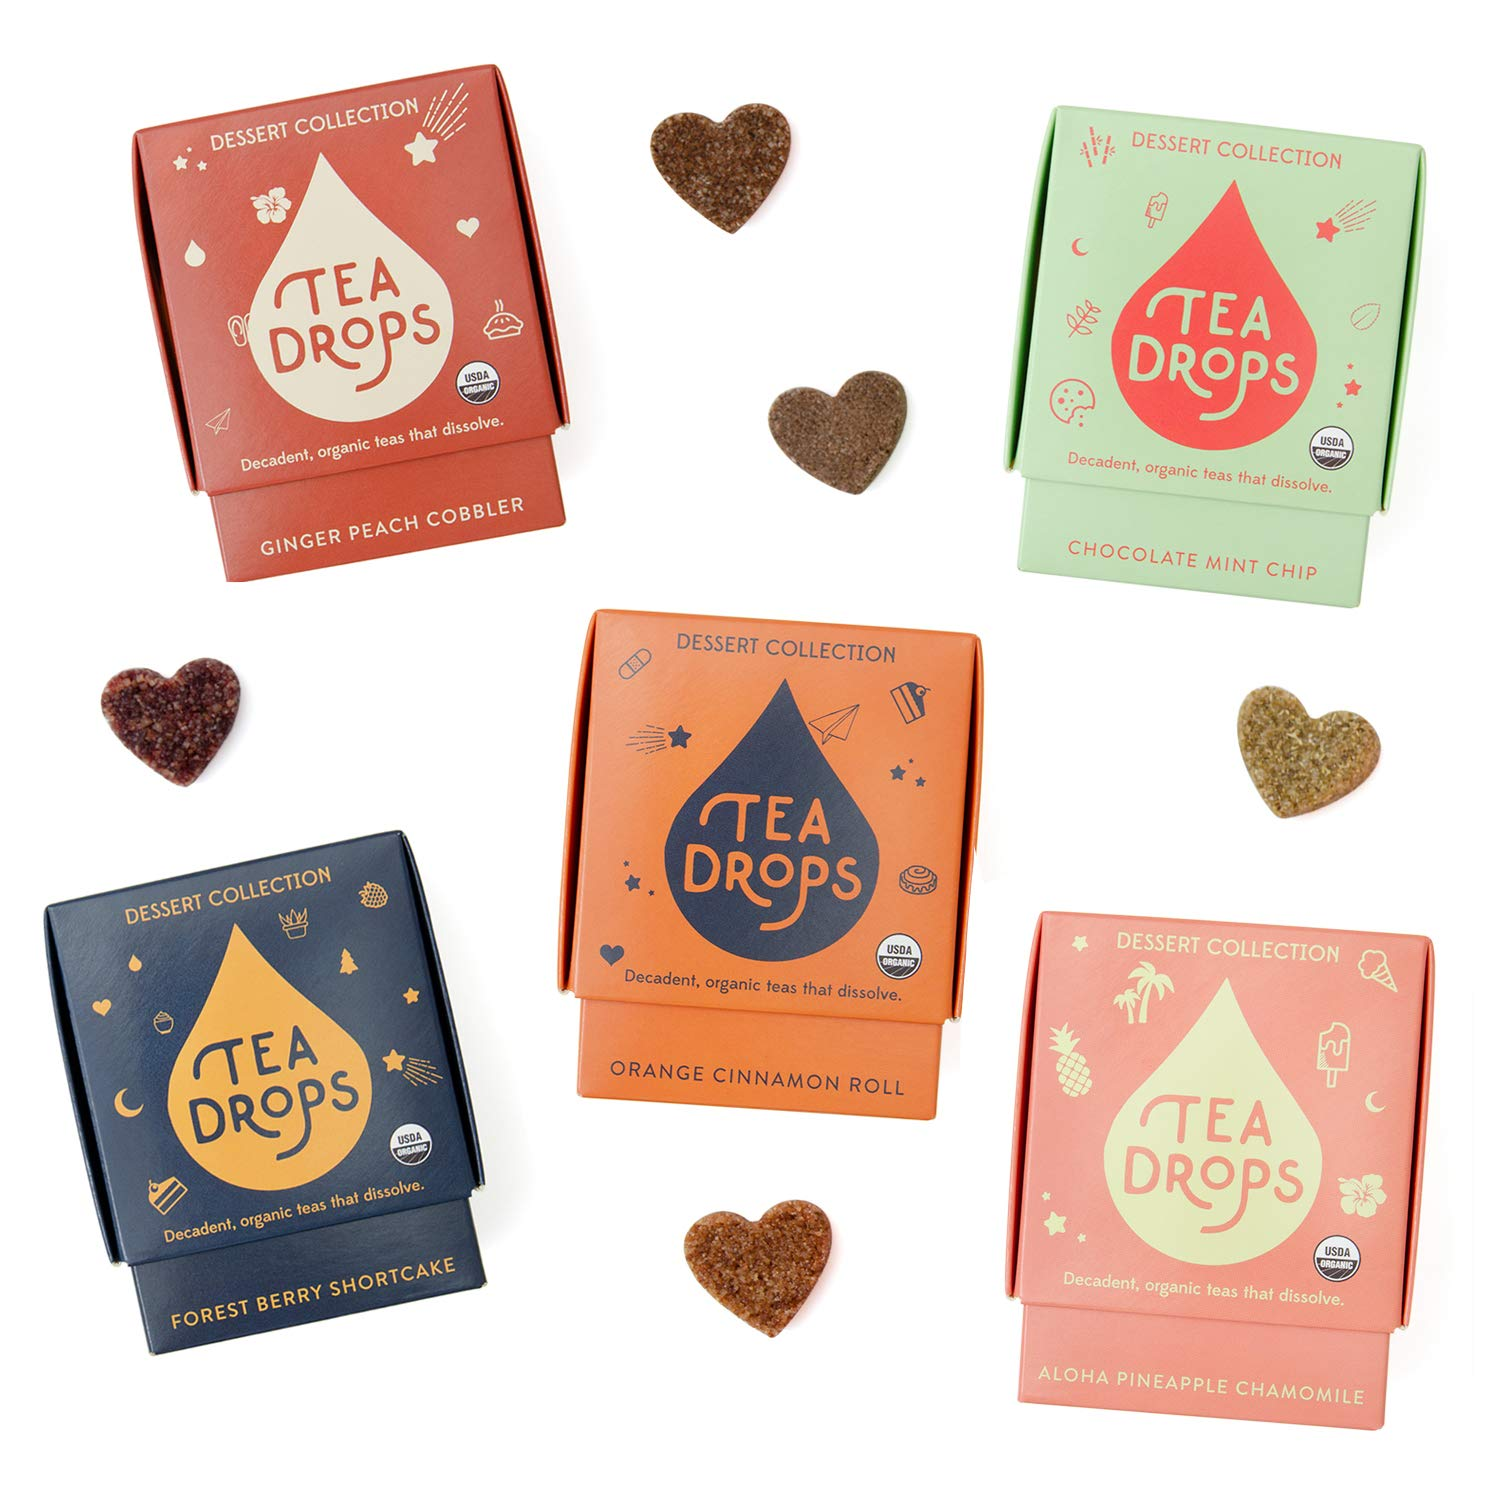 Organic Loose Leaf Tea | Sweetened Dessert Collection | Orange Cinnamon Roll, Ginger Peach Cobbler, Chocolate Mint Chip, Berry Shortcake, & Pineapple Chamomile | 10 Drops Each | Delicious Hot & Iced by Tea Drops